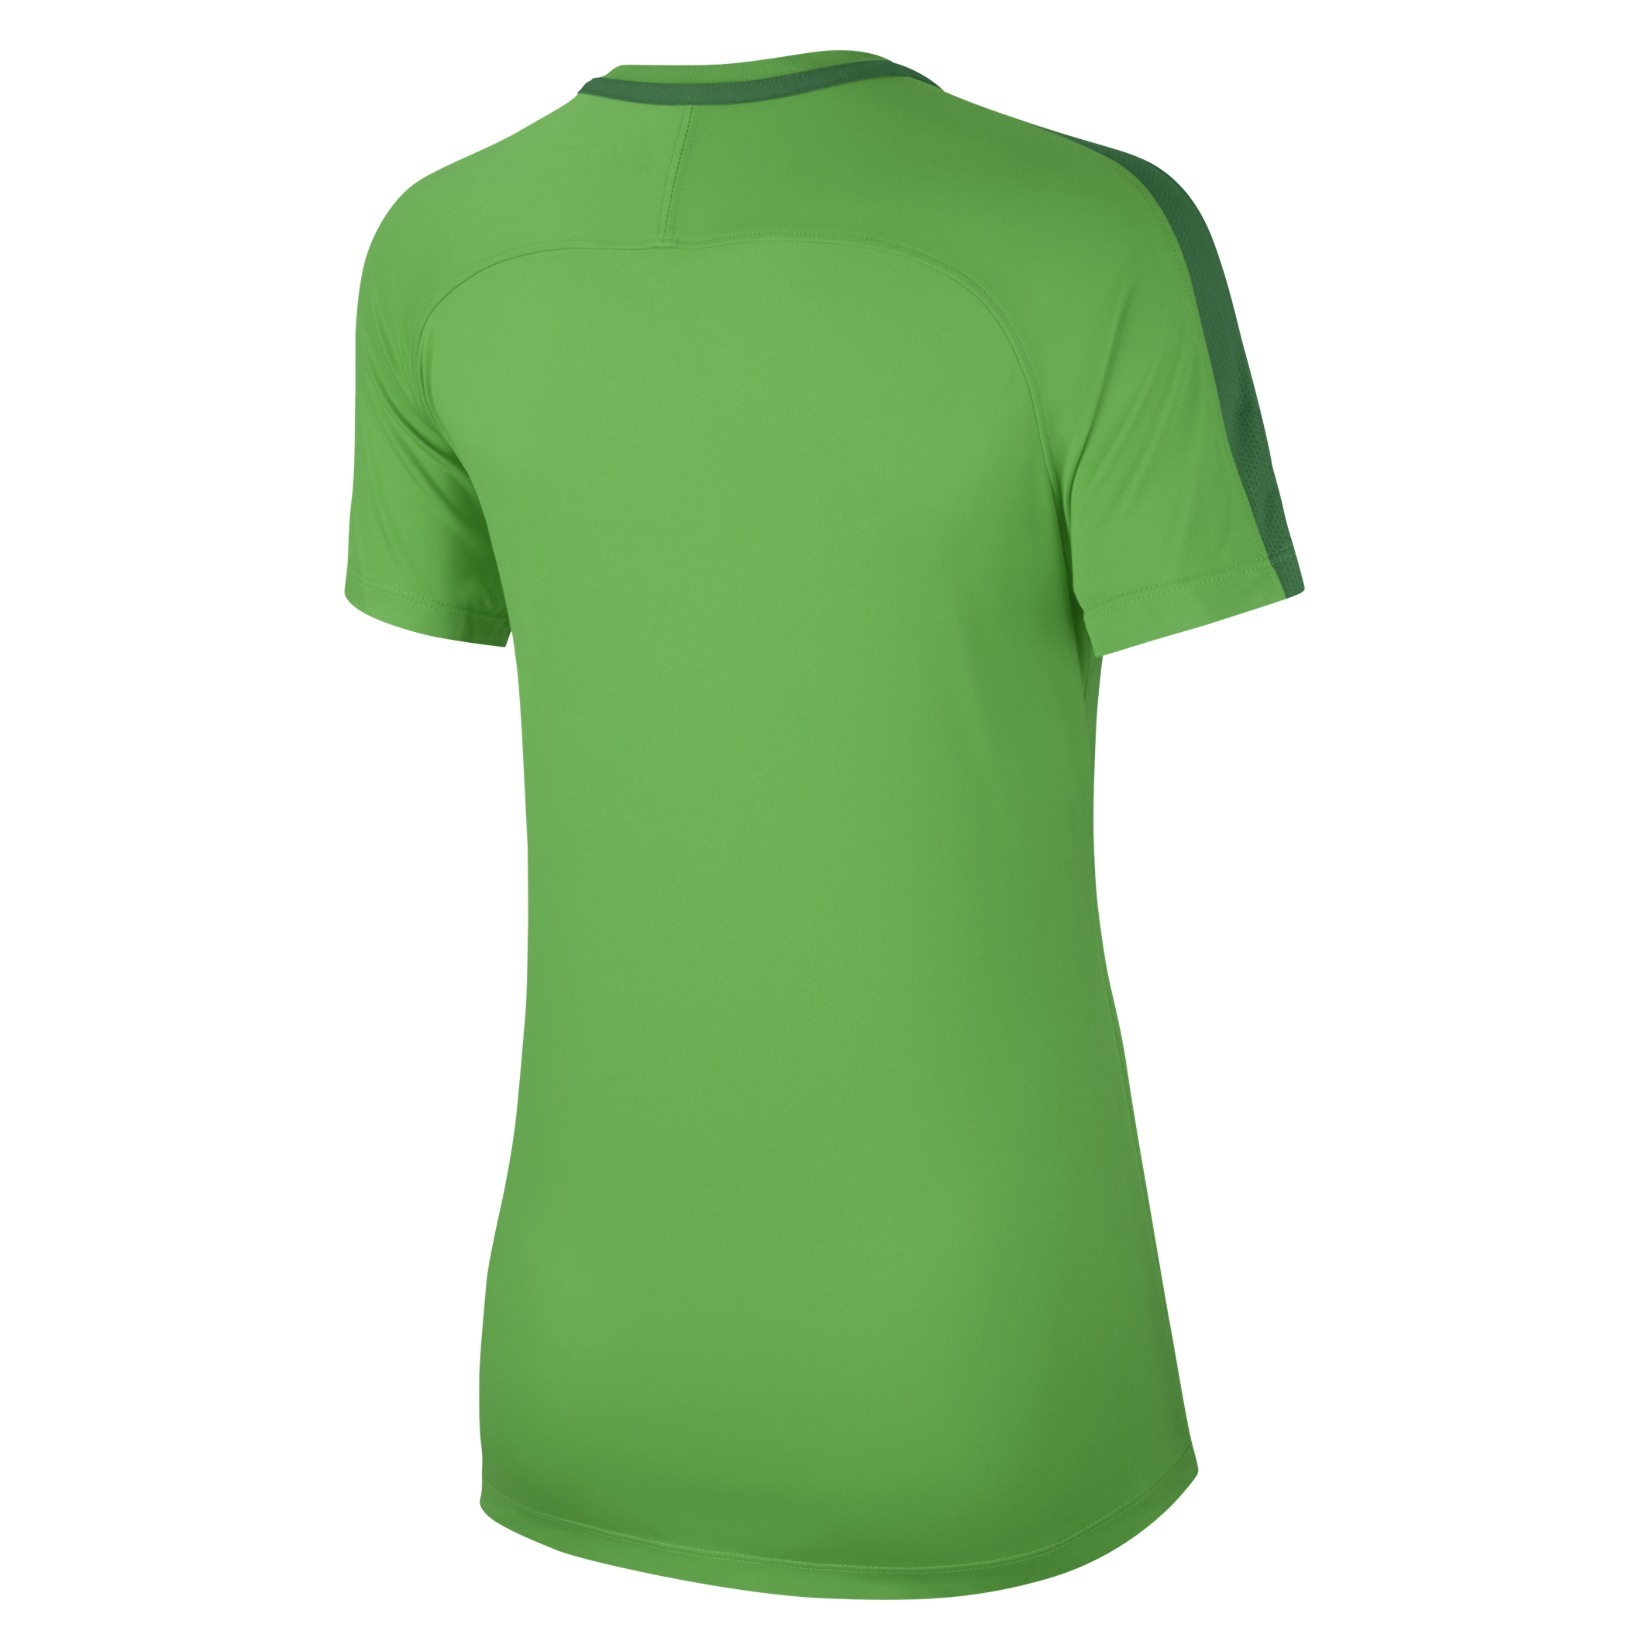 Nike Womens Academy 18 Short Sleeve Top (w) Lt Green Spark-Pine Green-White